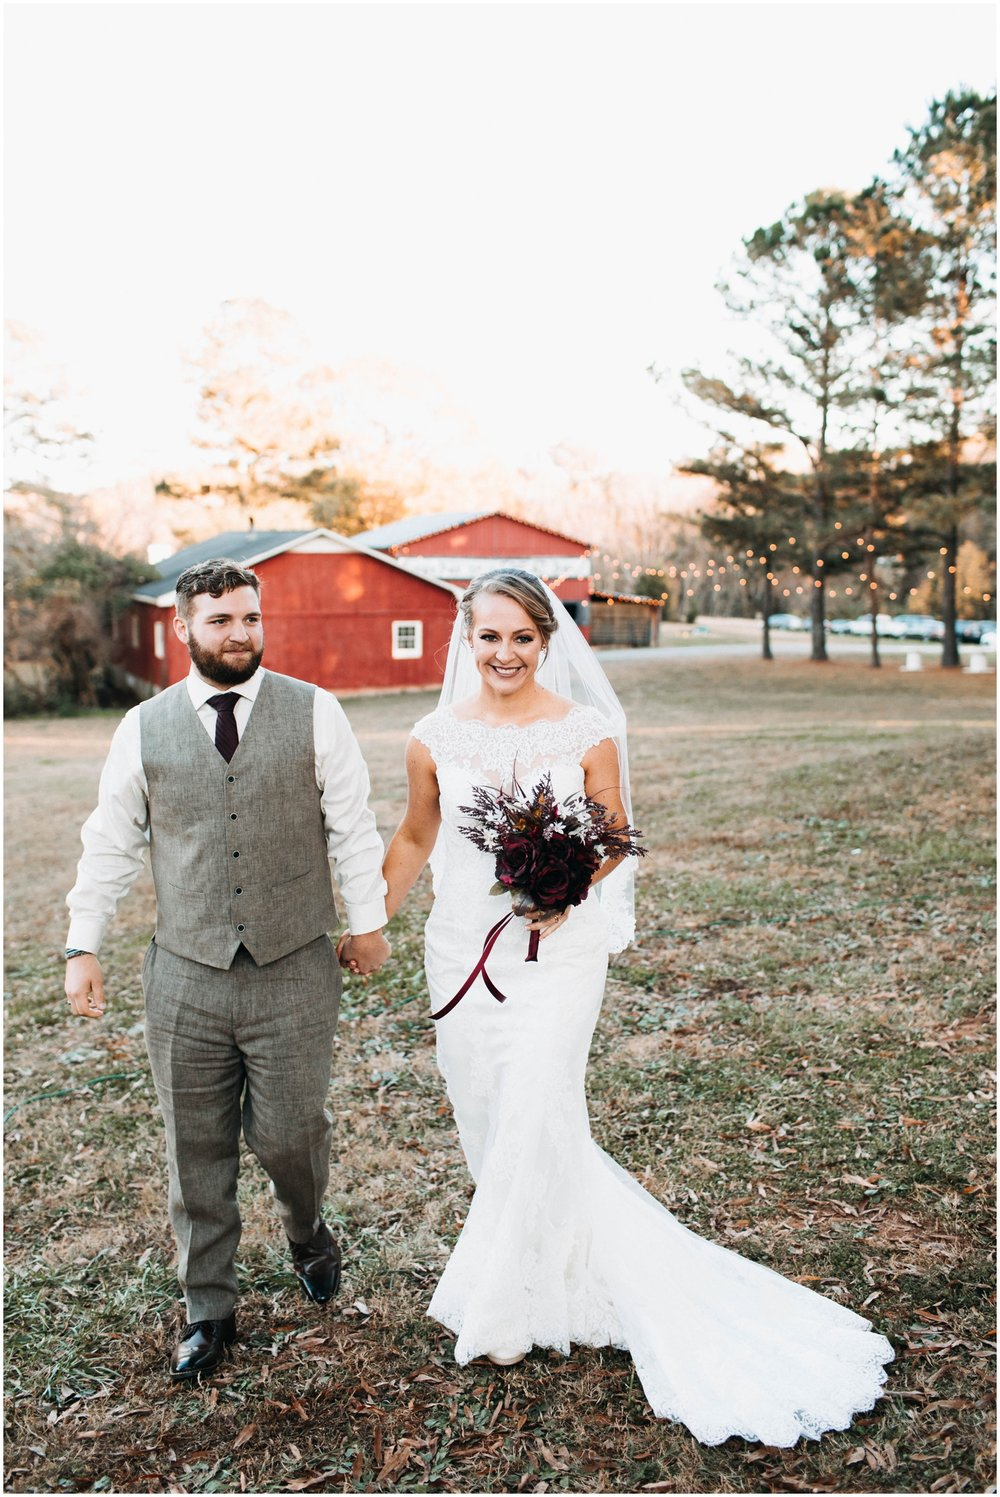 Jess+Dan_rustic_southern_farm_fall_wedding_charlotte_north carolina_taylor powers_0202.jpg